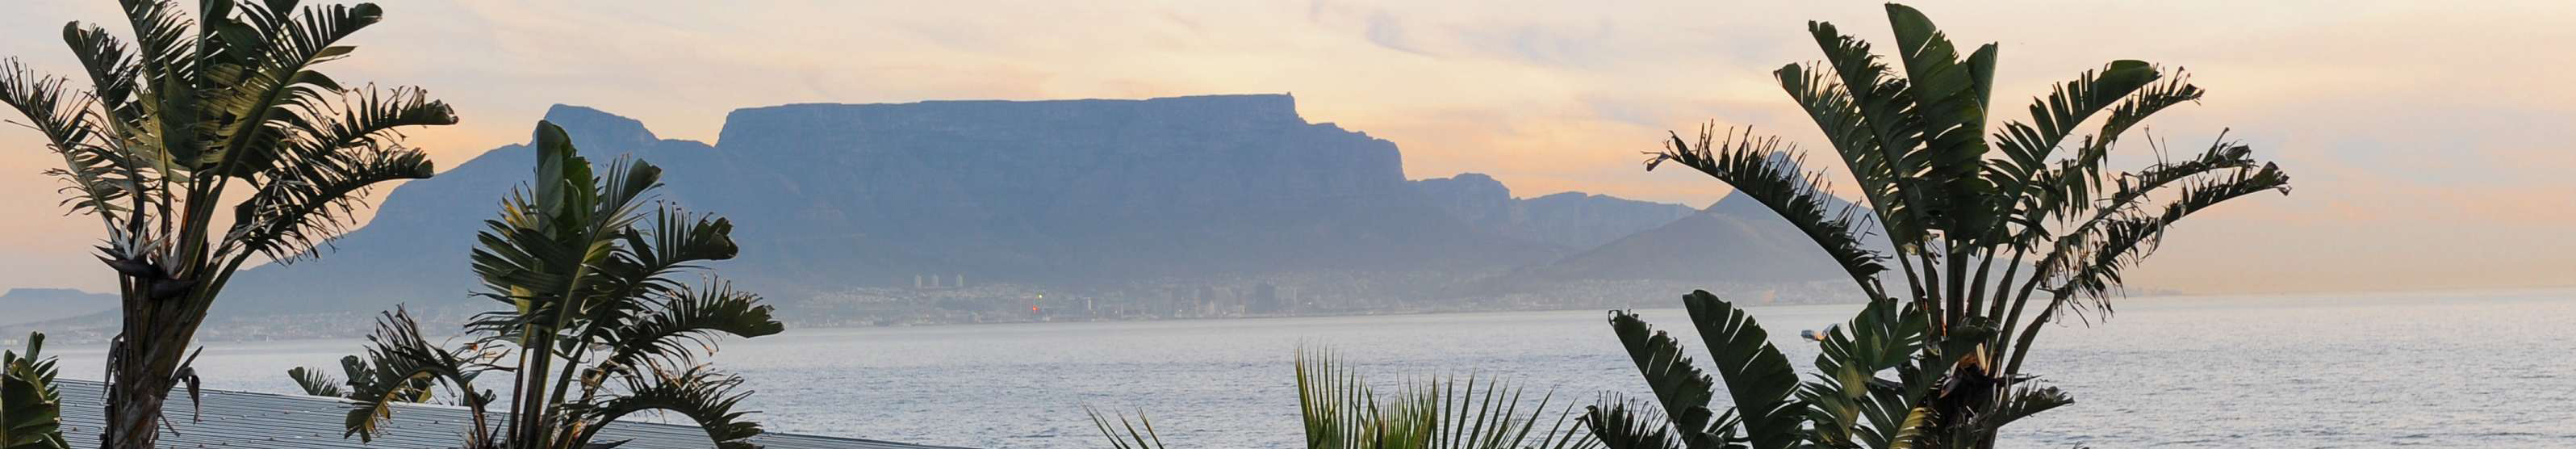 table-mountain-banner-3